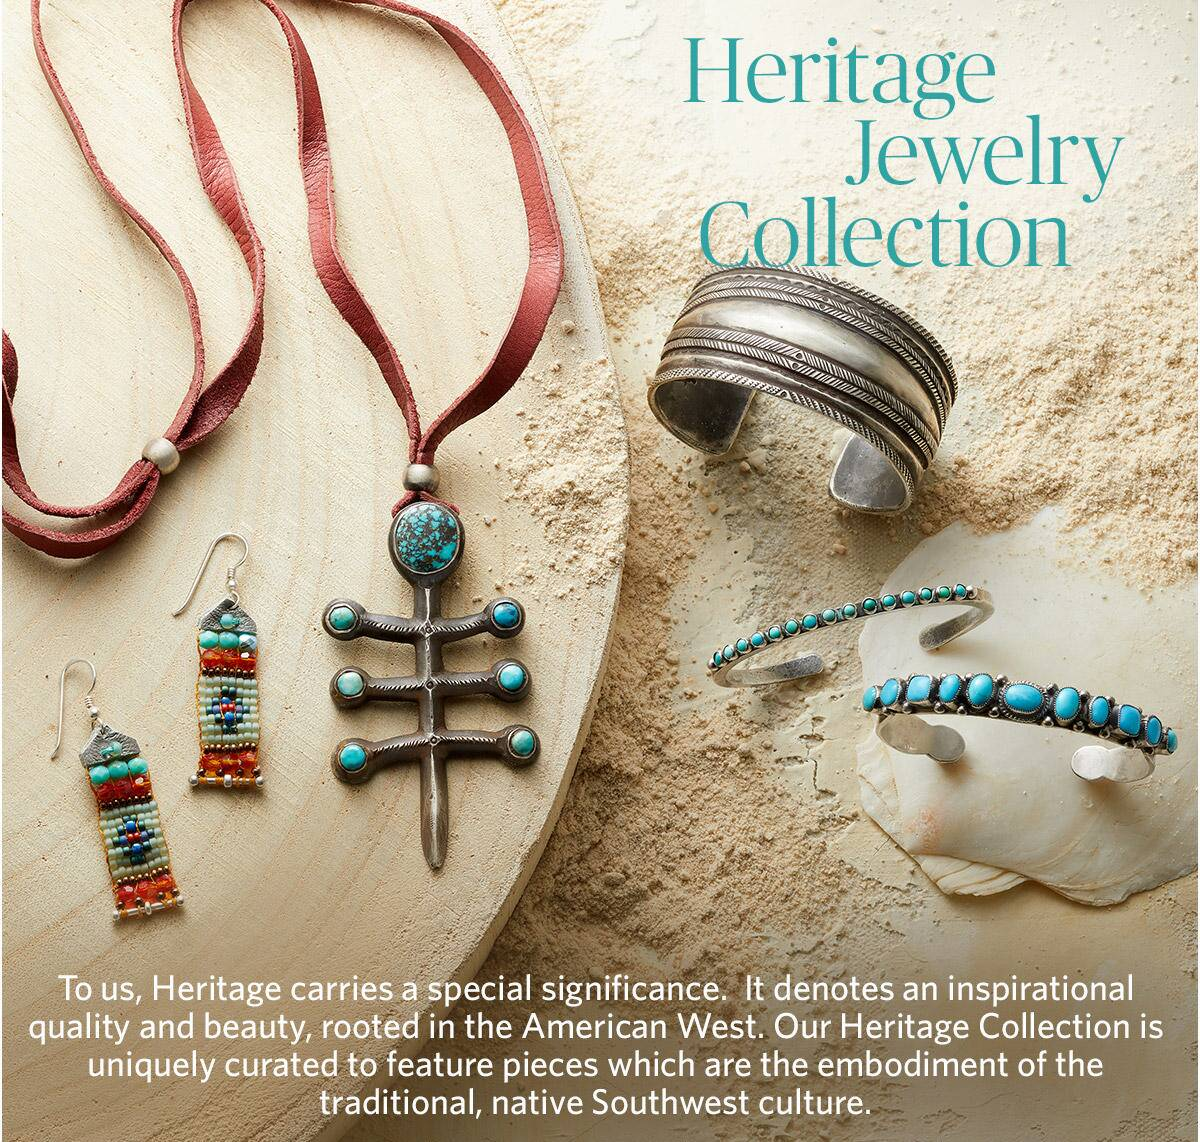 Heritage Jewelry Collection